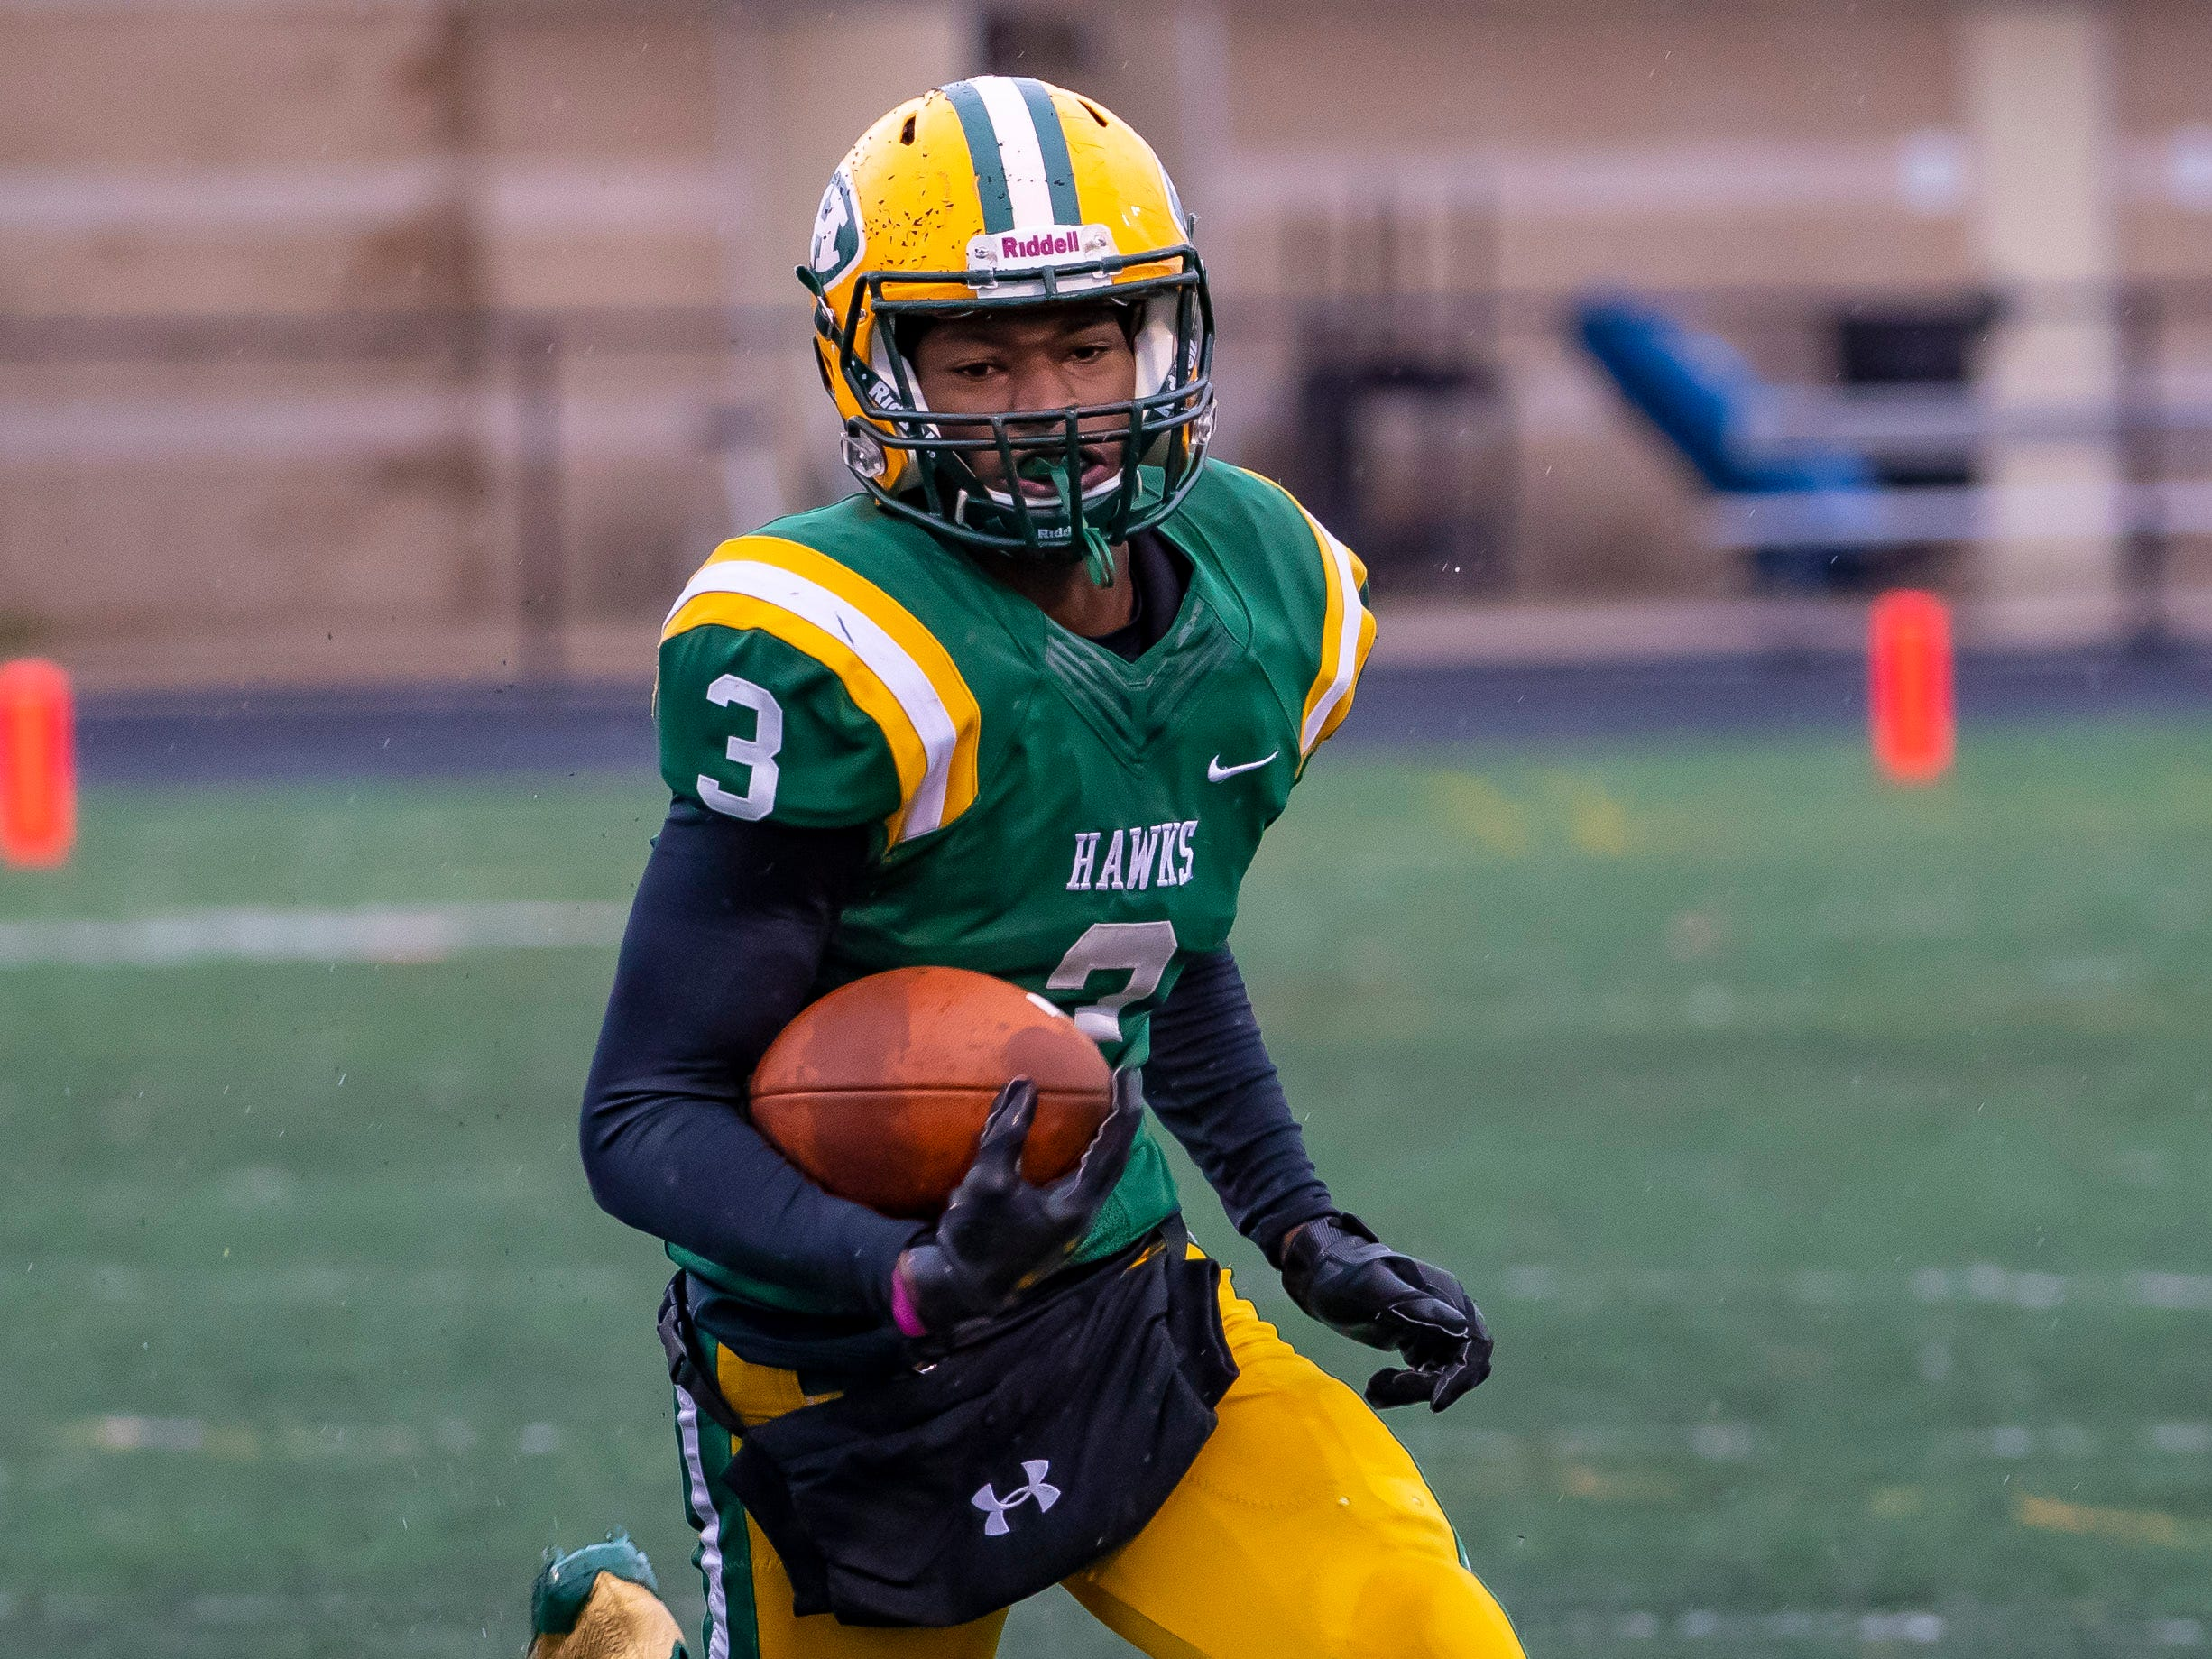 """14. Rod Heard, Farmington Hills Harrison (Northwestern) — CB/5-10/170: Heard showed his versatility to lead Harrison to the Division 3 regional final, playing running back, defensive back and, at times quarterback. He even threw a game-winning touchdown off a broken play while holding for a PAT. He rushed for 1,492 yards and 22 touchdowns while also grabbing 16 passes for two touchdowns and returning two kickoffs for scores. He got in on 47 tackles while breaking up six passes and intercepting a pass to earn a spot on The News Dream Team. """"Rod was our offensive catalyst, whether it was running back, quarterback or wide receiver,"""" coach John Herrington said. """"He was our team leader and is going to college at Northwestern as a defensive back."""""""